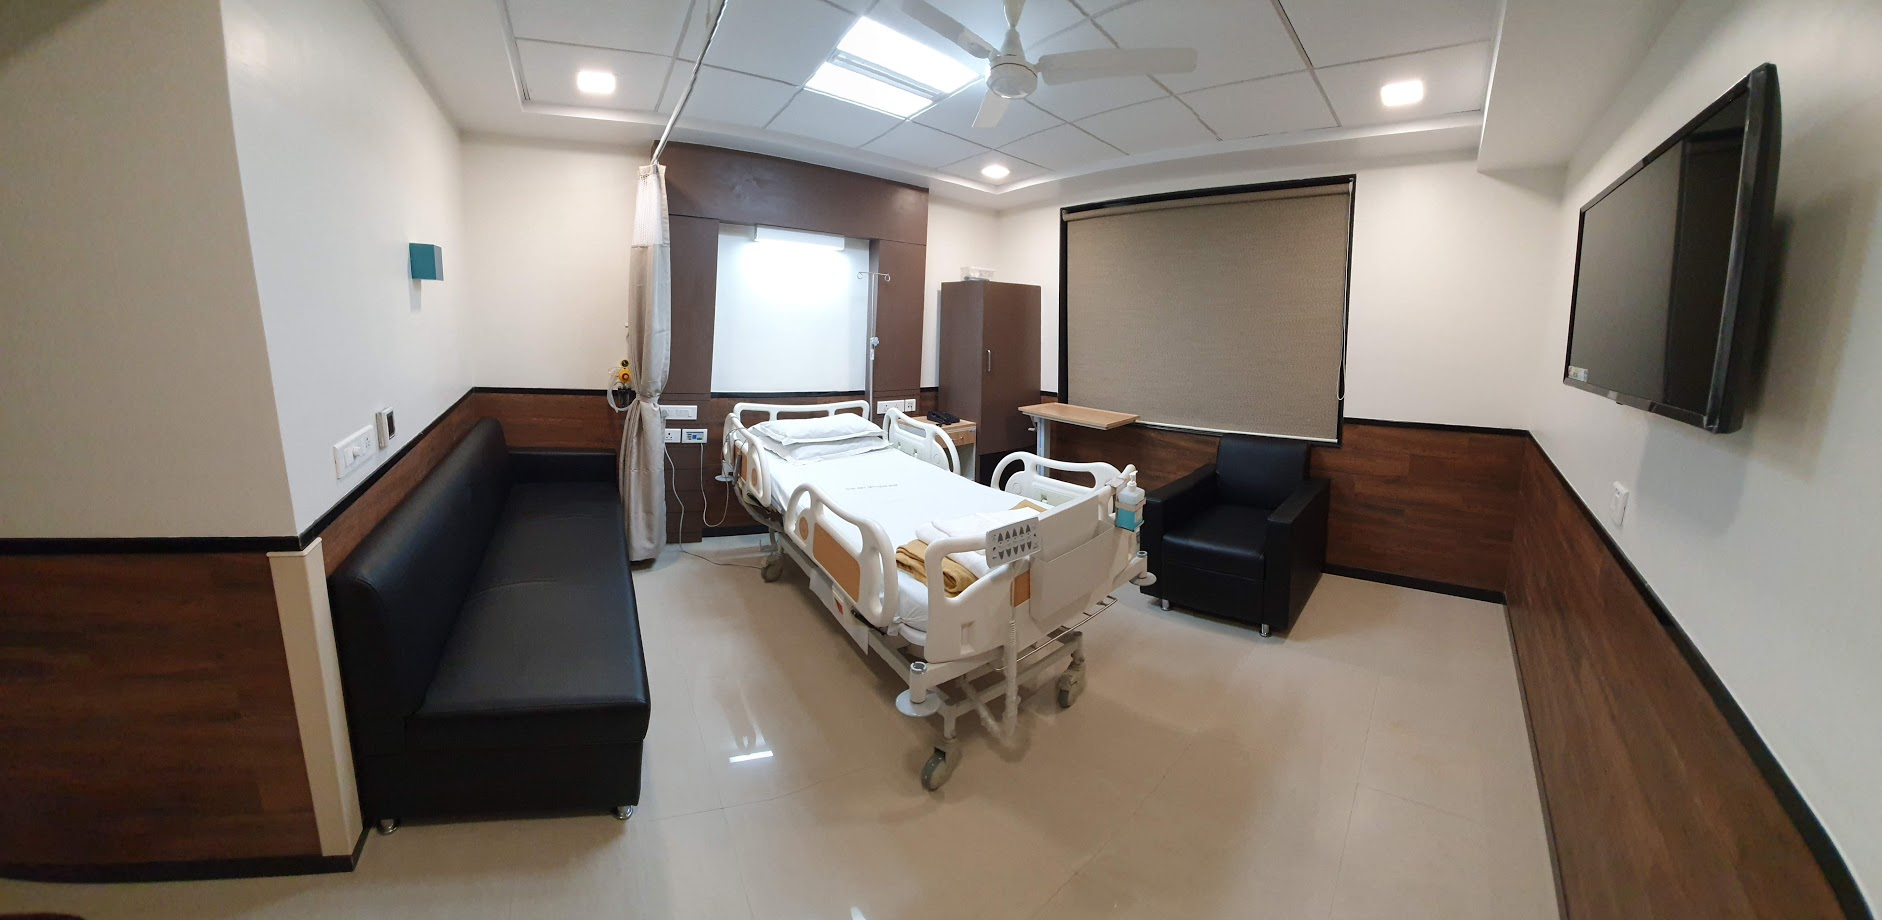 Hospital for Occupational Therapy in Navi Mumbai